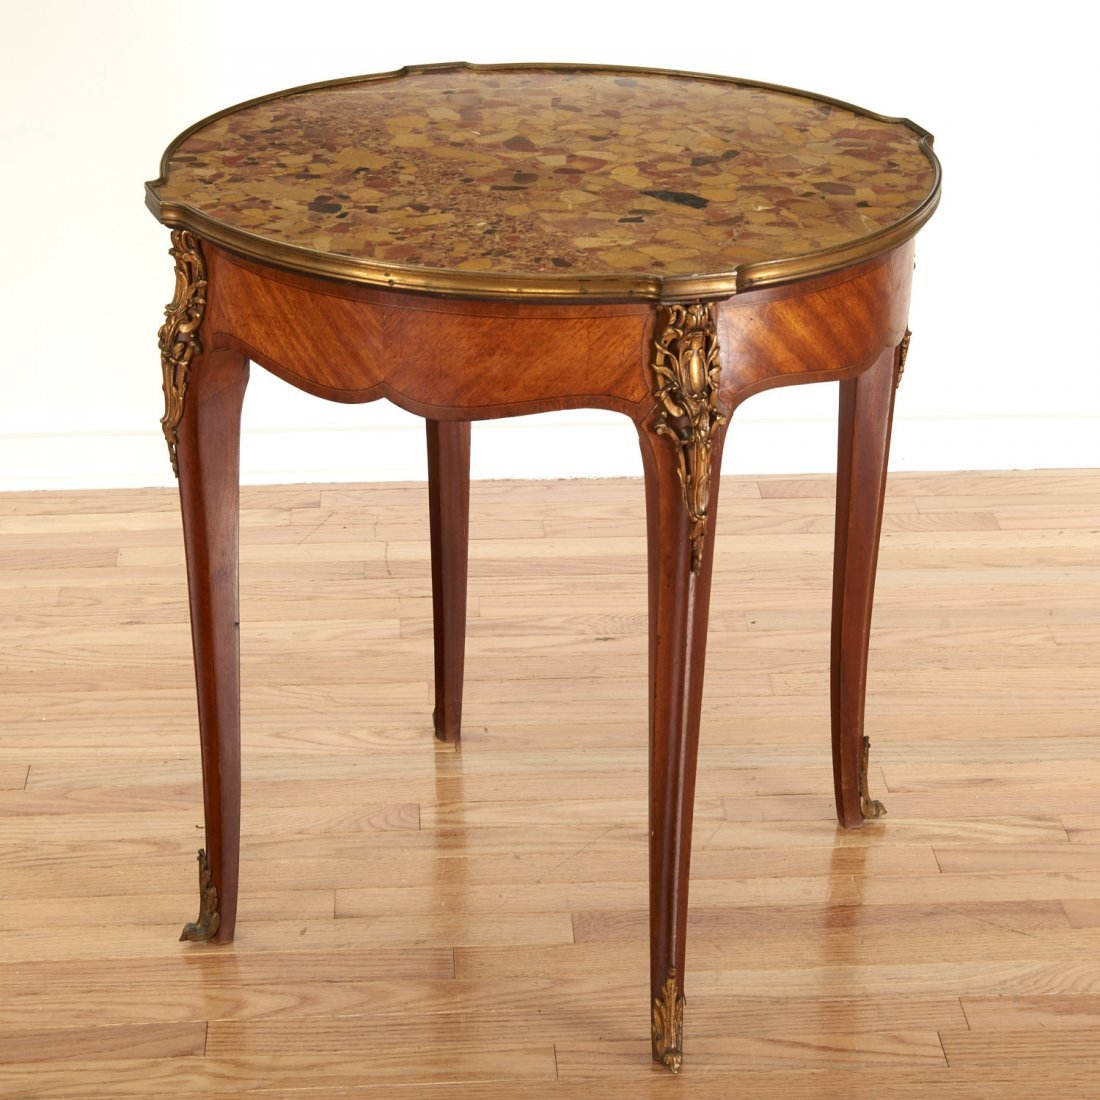 Louis XV style bronze mounted marble top table - 6